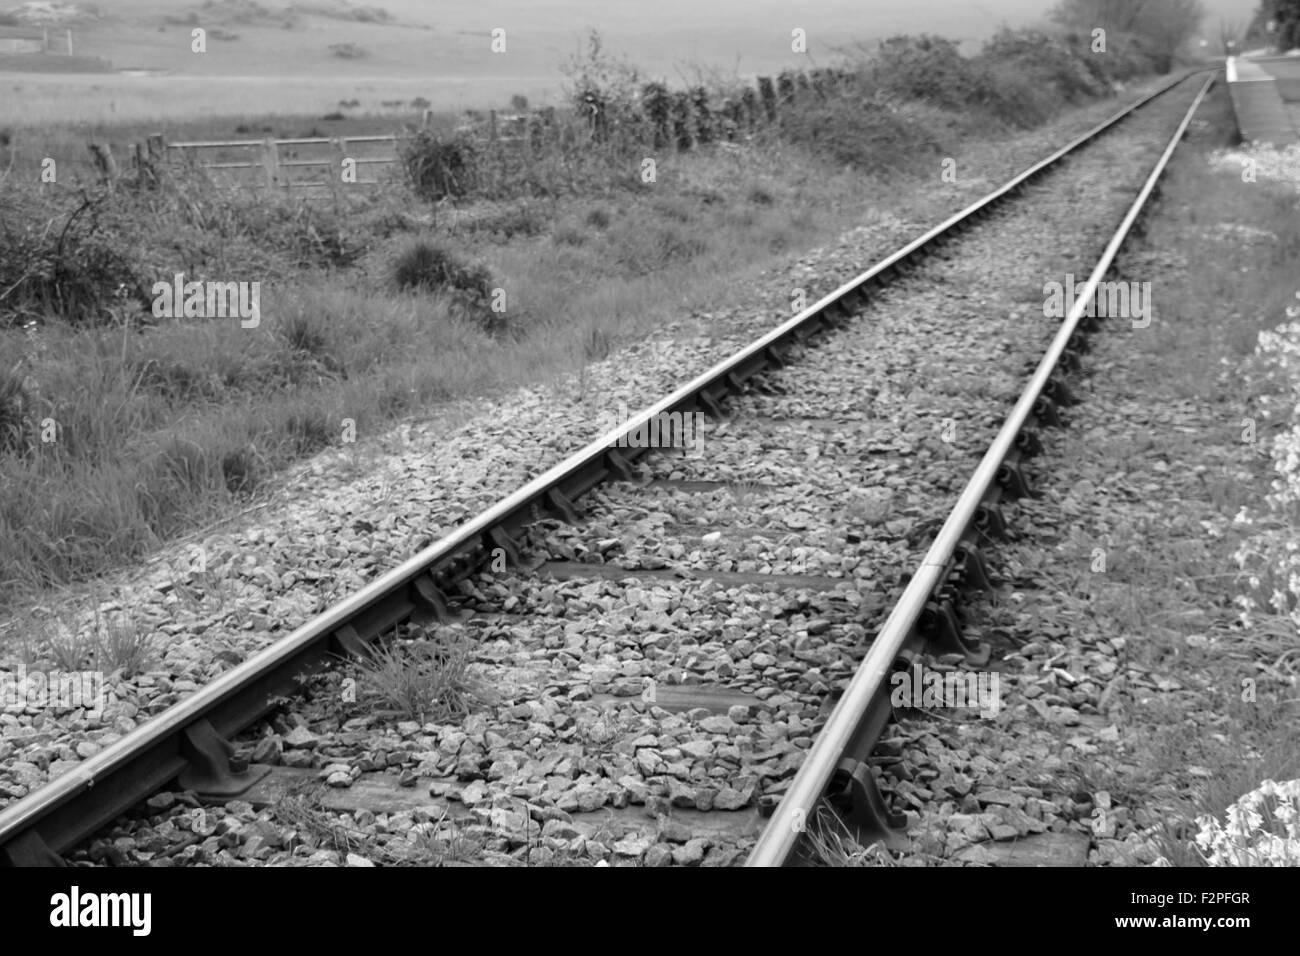 Deserted empty Railway track straight with no-one - Stock Image